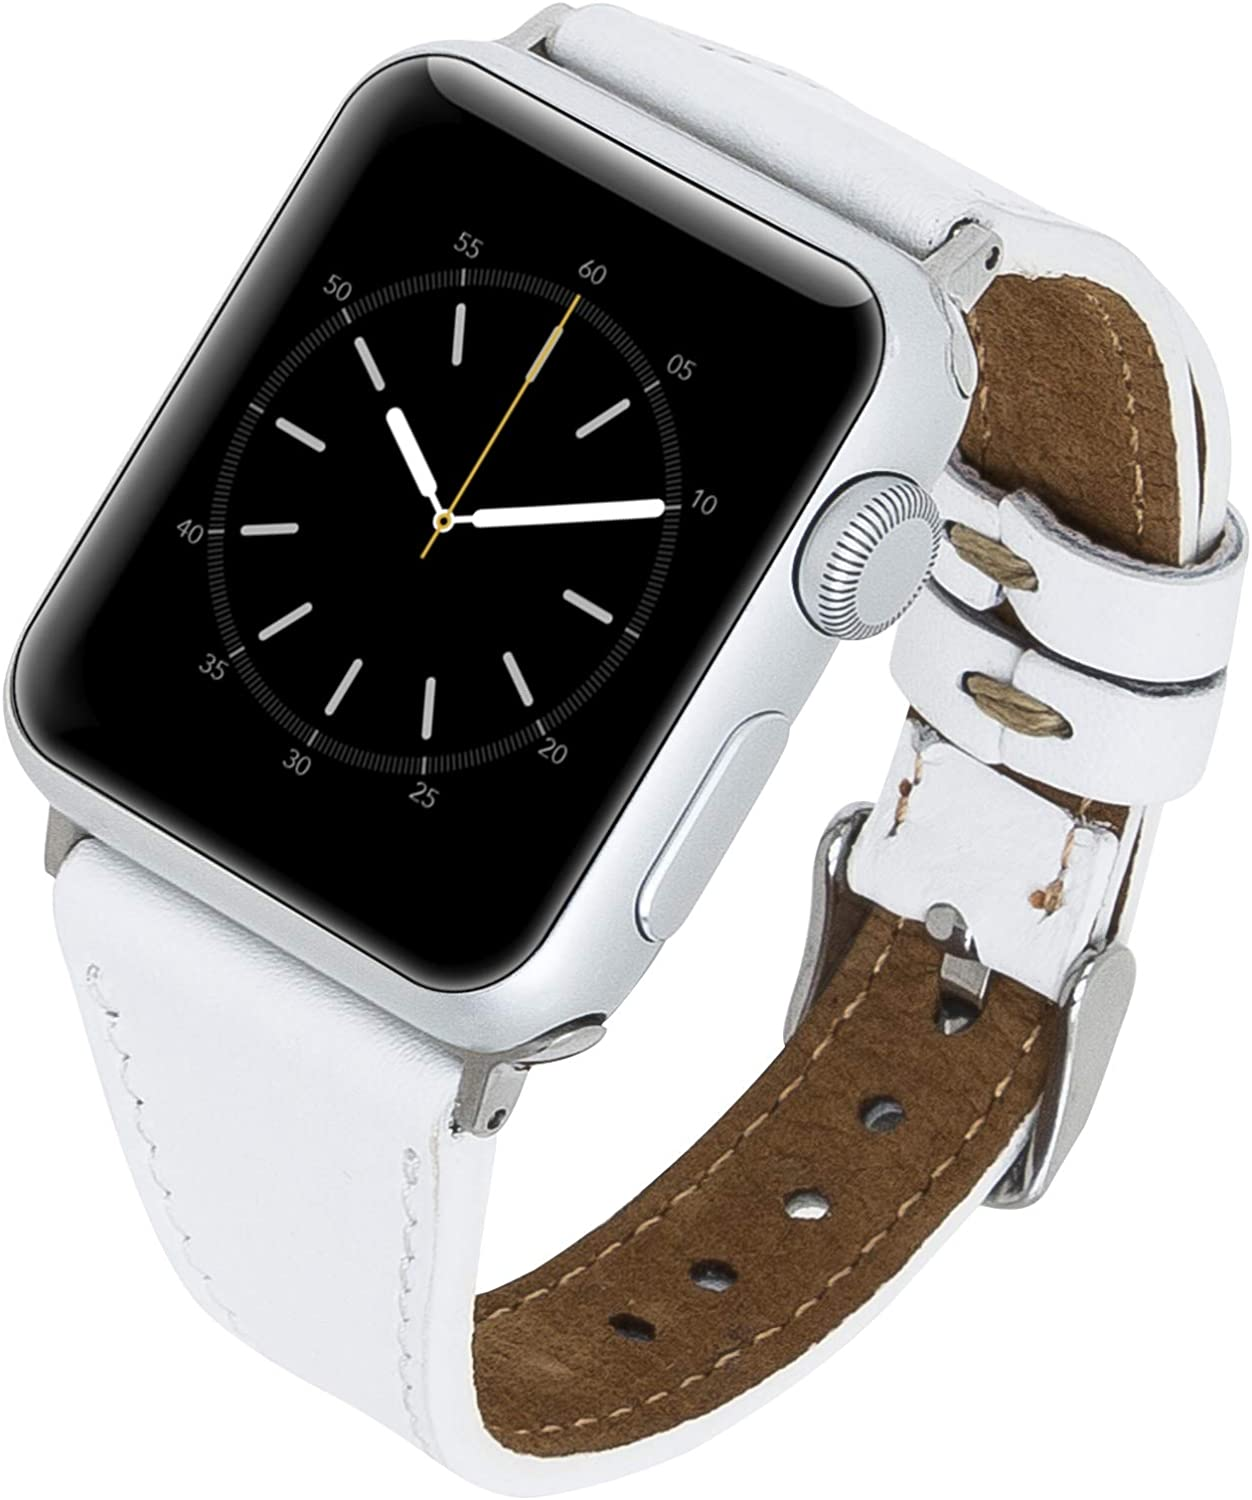 Venito Messina Leather Slim Watch Band Compatible with Apple Watch 42mm 44mm - Strap Designed for iwatch Series 1 2 3 4 5 6 (White w/Silver Connector&Clasp)